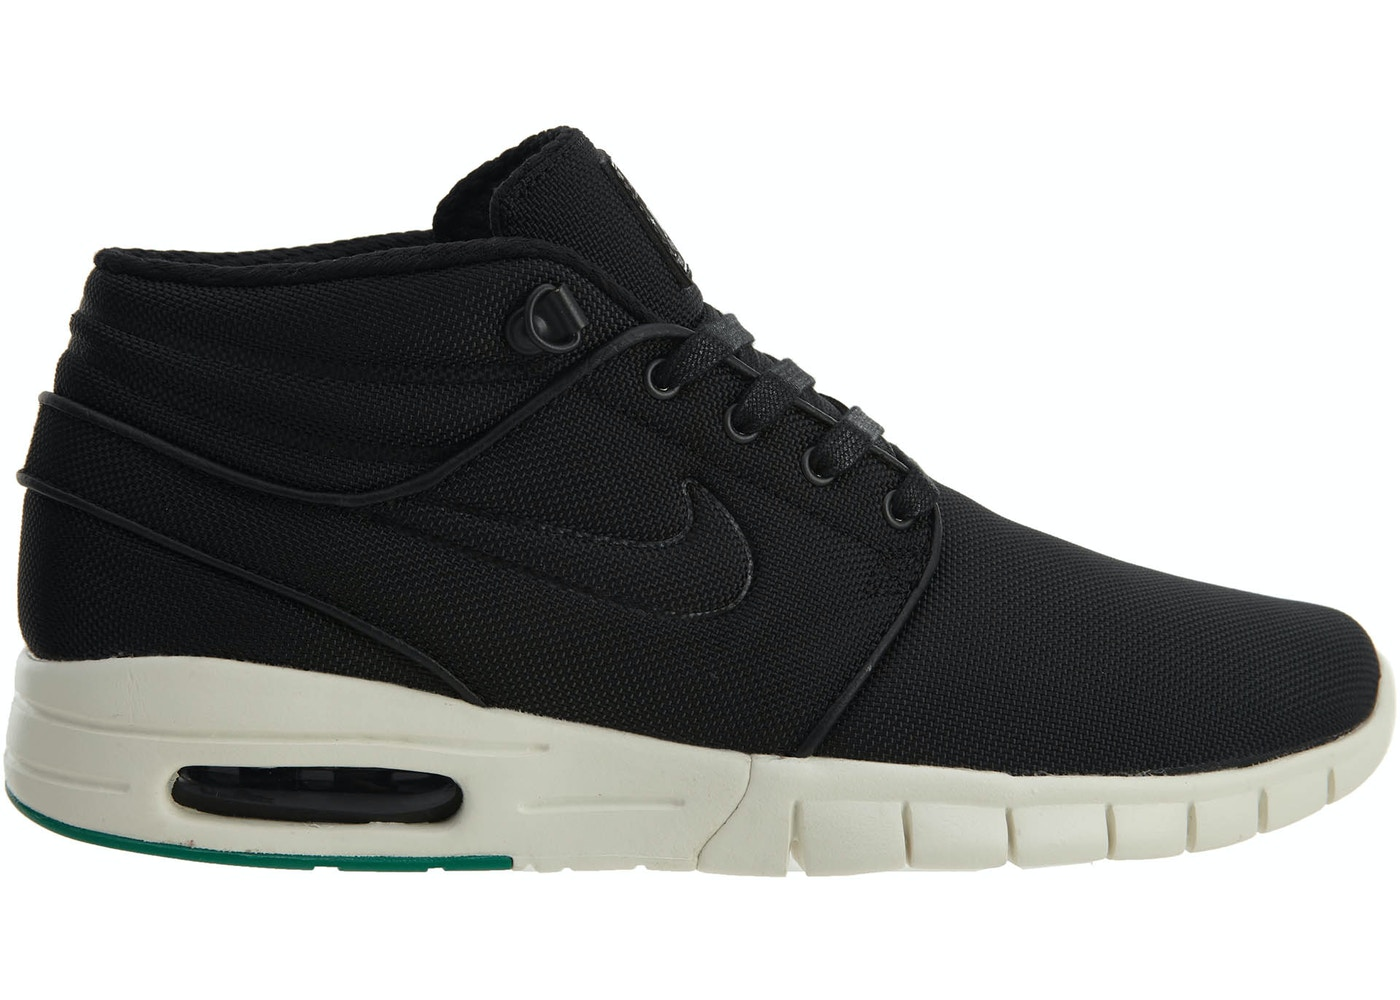 1f8e364af2a5 Sell. or Ask. Size --. View All Bids. Nike Stefan Janoski Max Mid Black  Black-Neptune Green